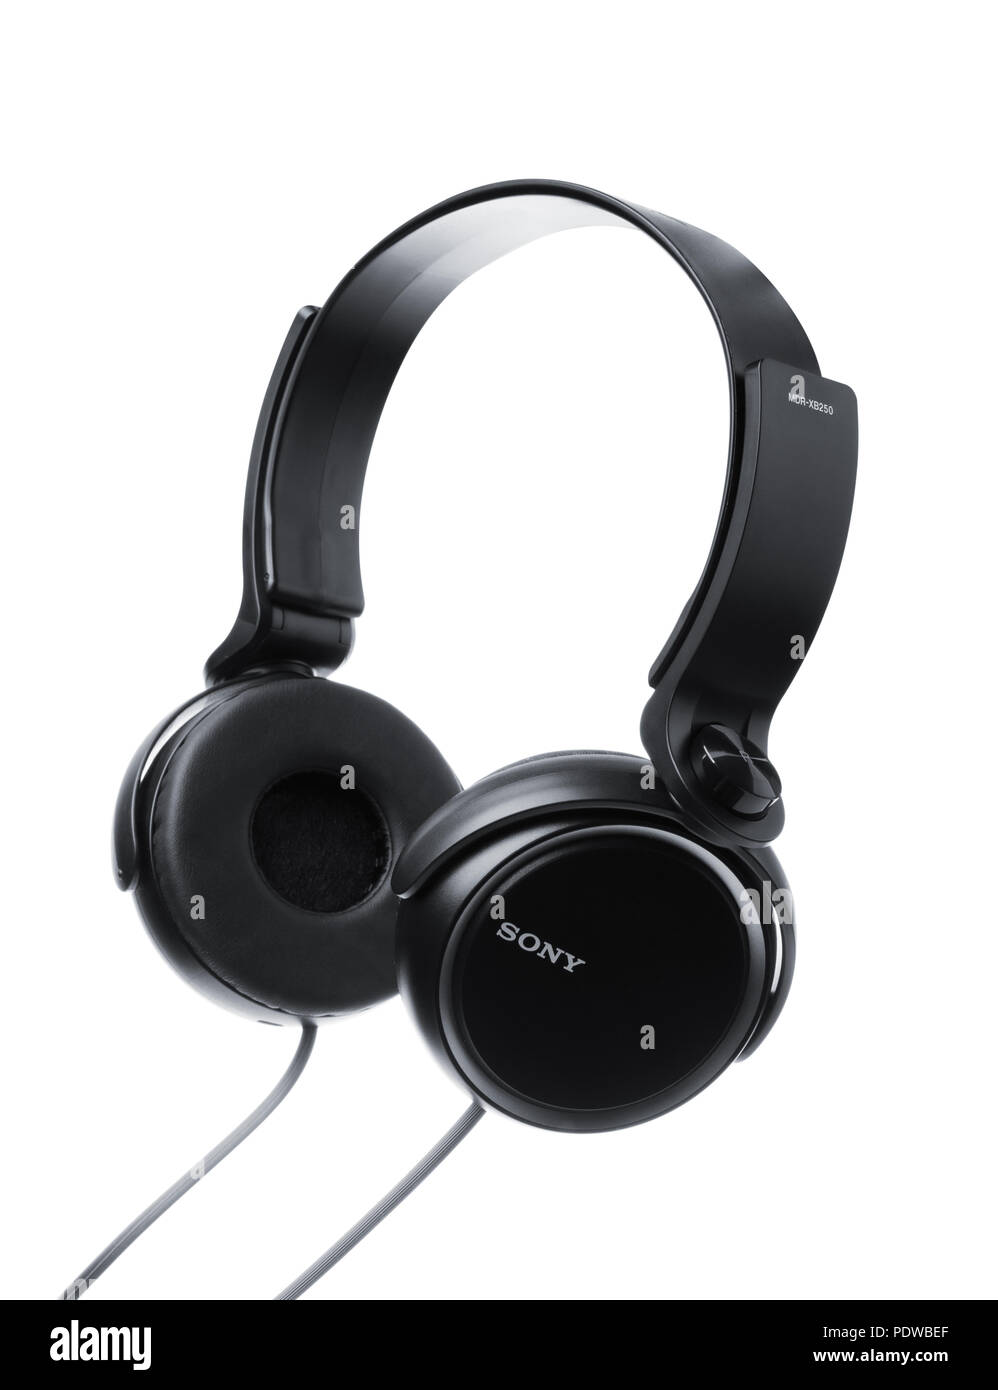 SAMARA, RUSSIE - 6 janvier 2018: Black SONY headphones isolated on a white background, éditorial d'illustration Photo Stock